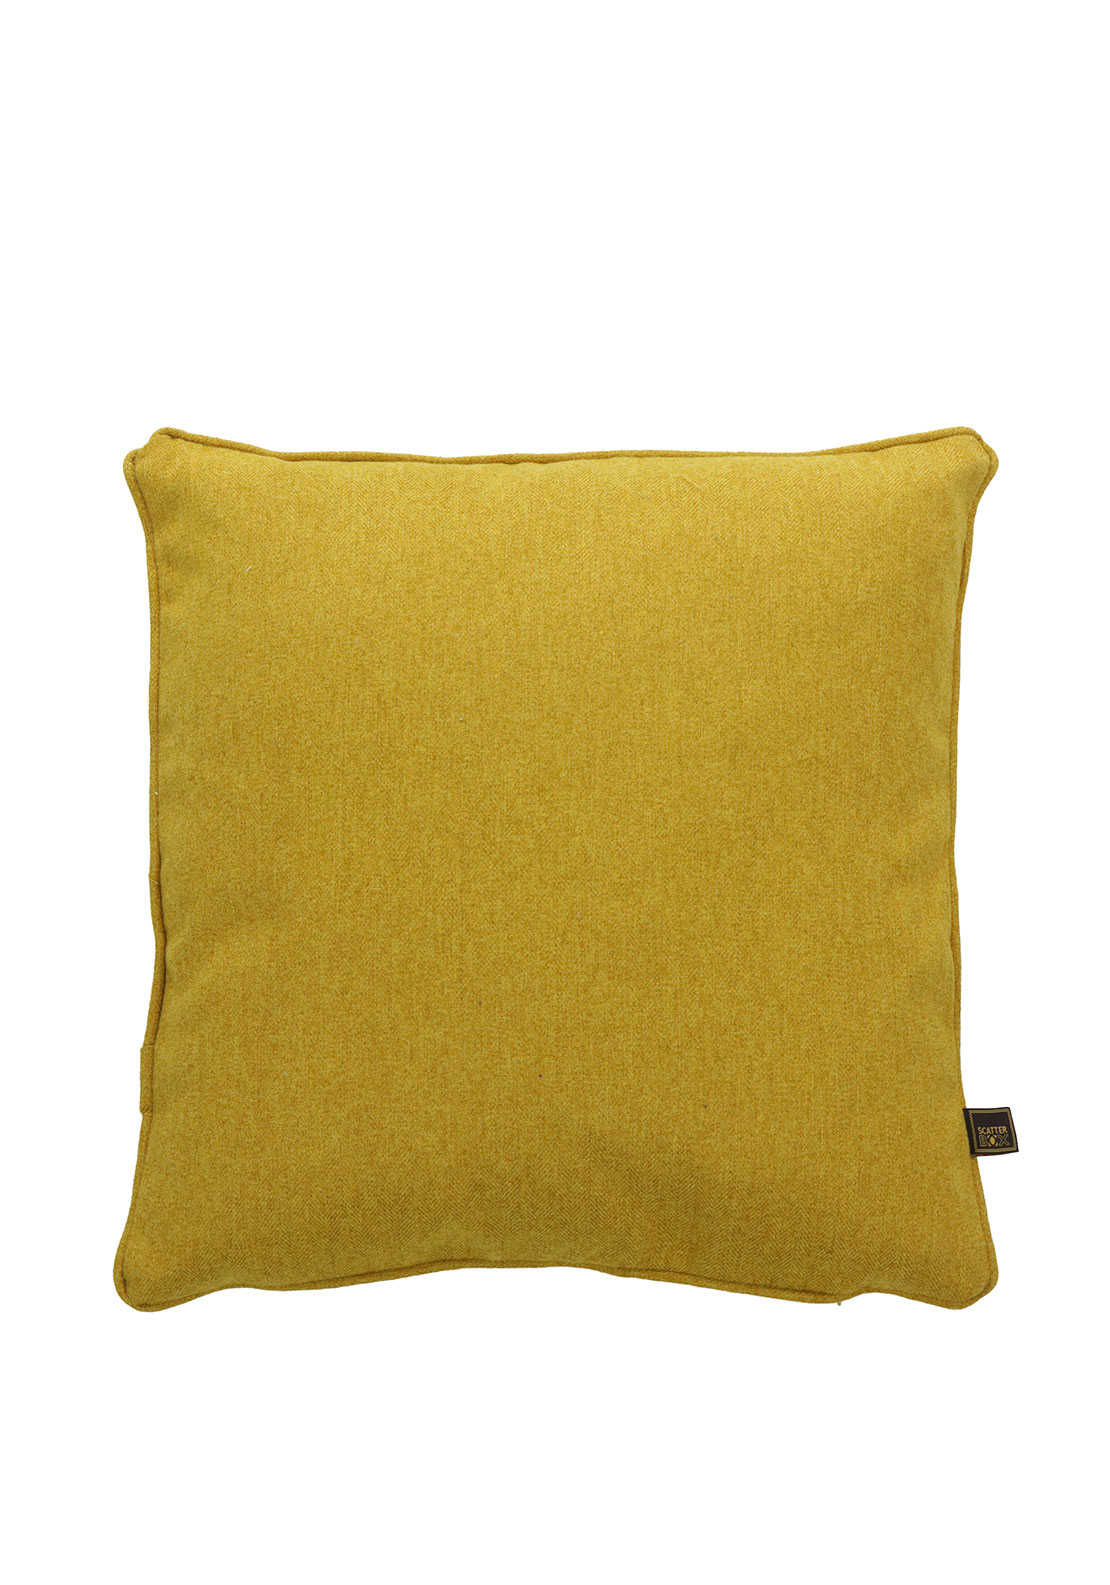 Scatterbox Herringbone Tweed Cushion 43 x 43cm, Mustard